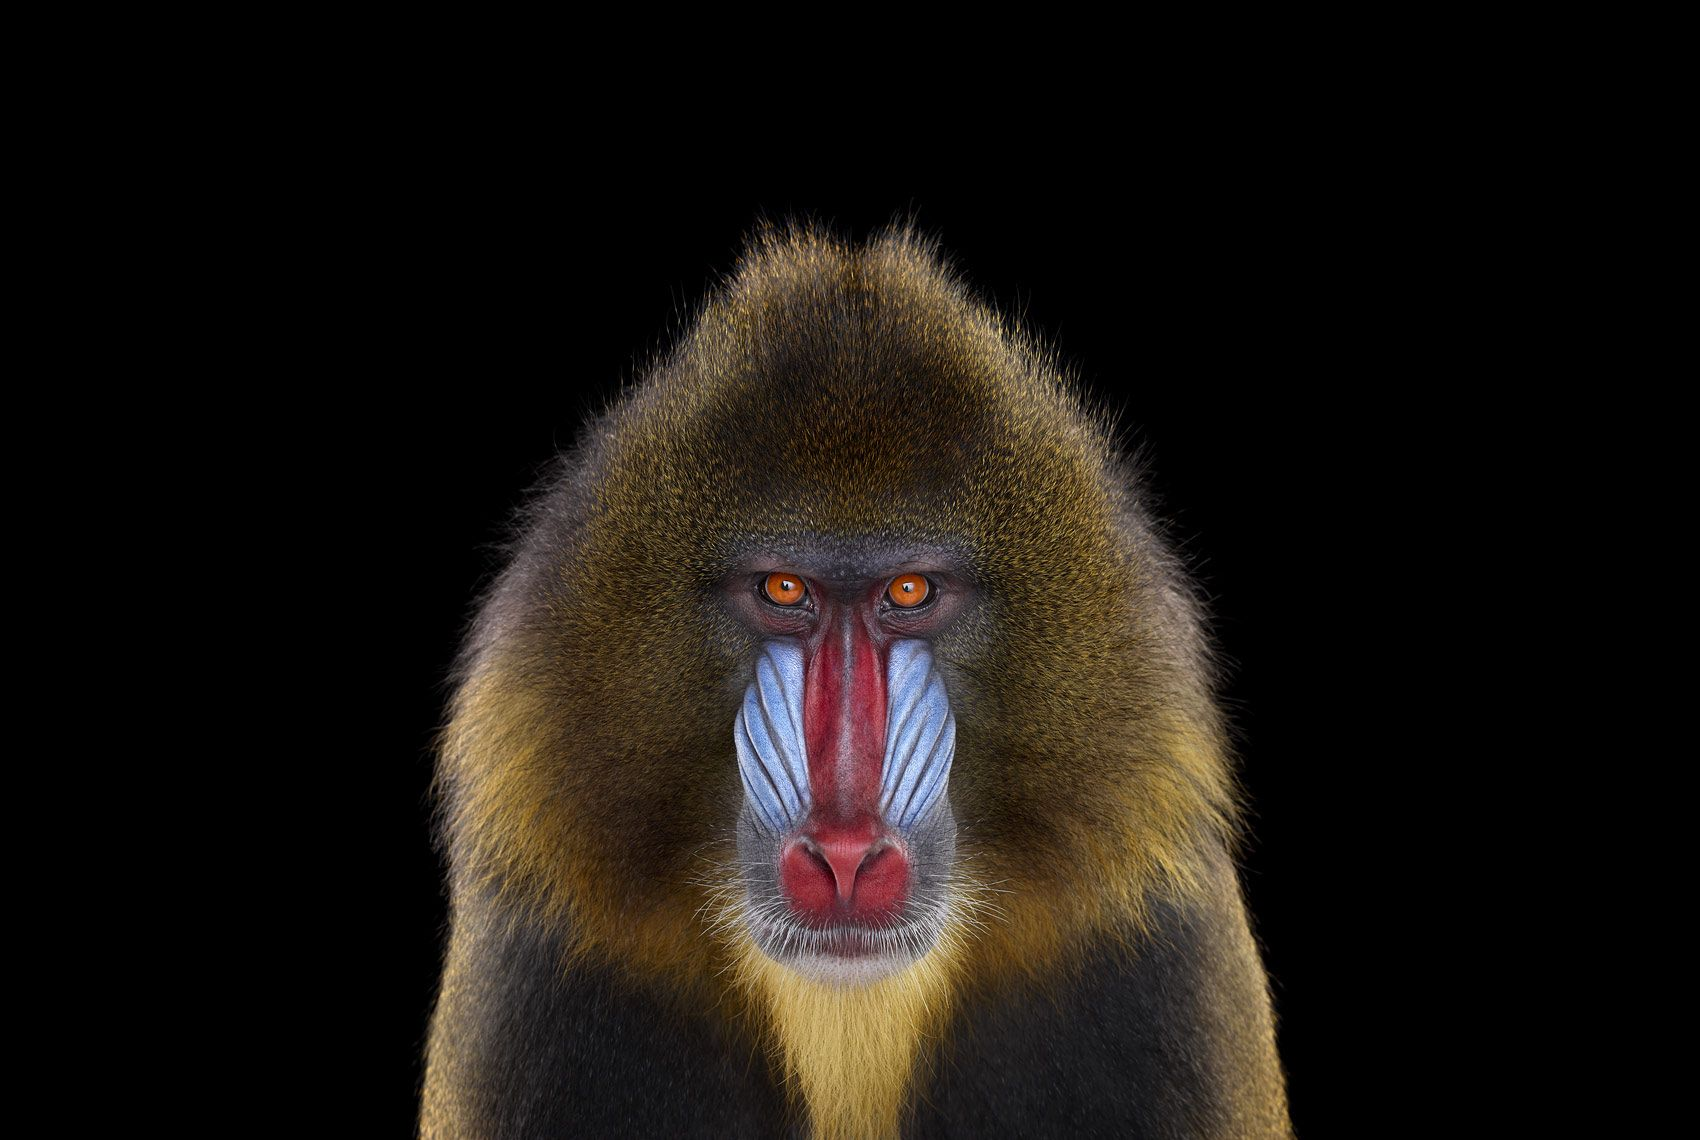 Mandrill #1, Los Angeles, CA, 2014,Brad Wilson,Photographie